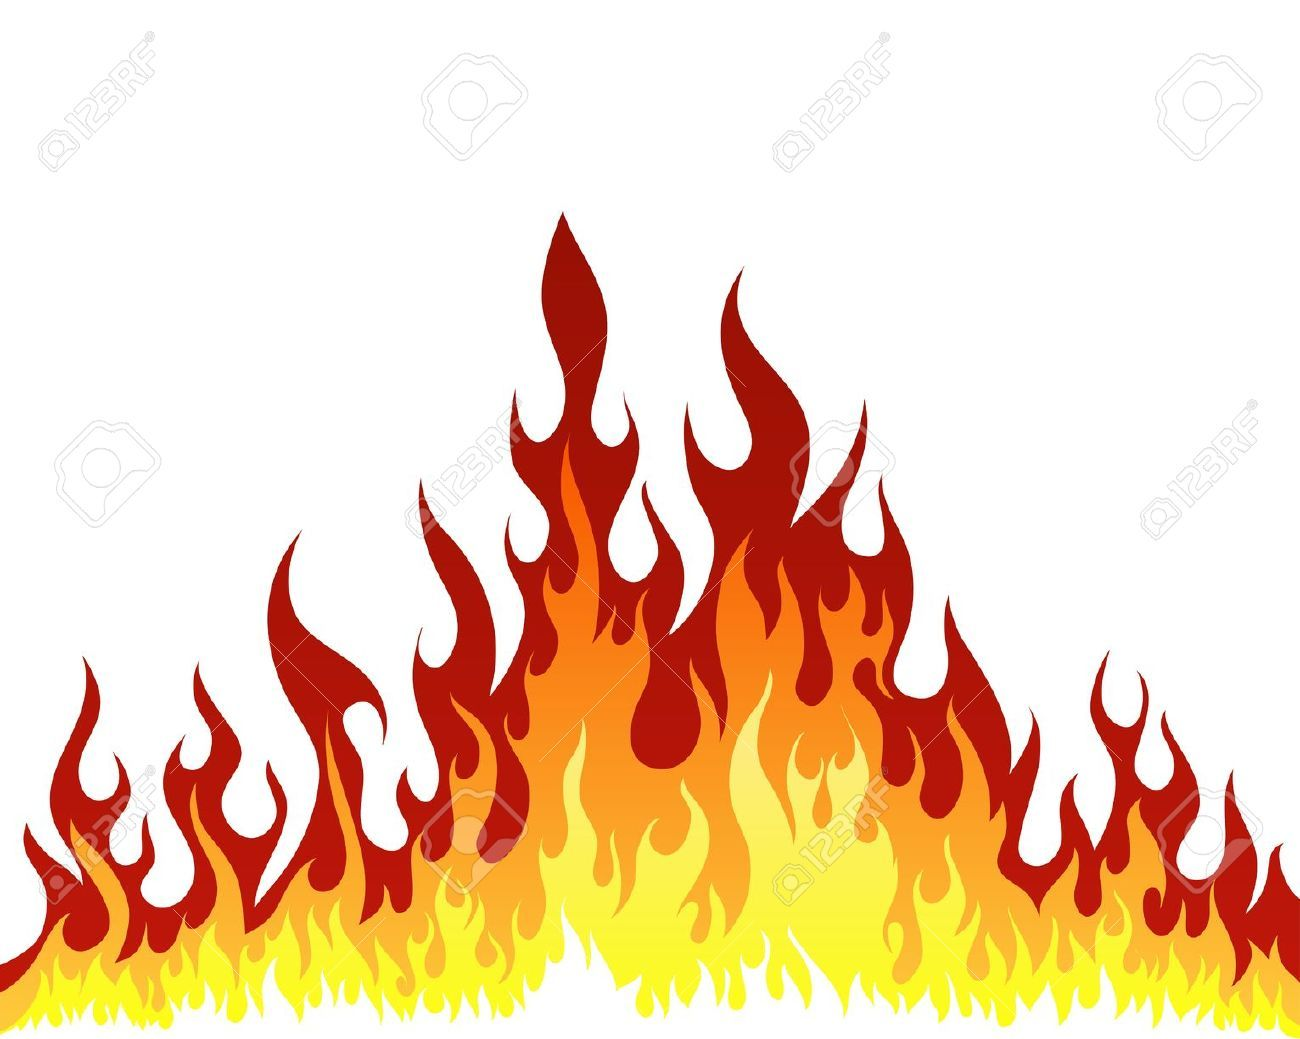 Flames Background Clipart.